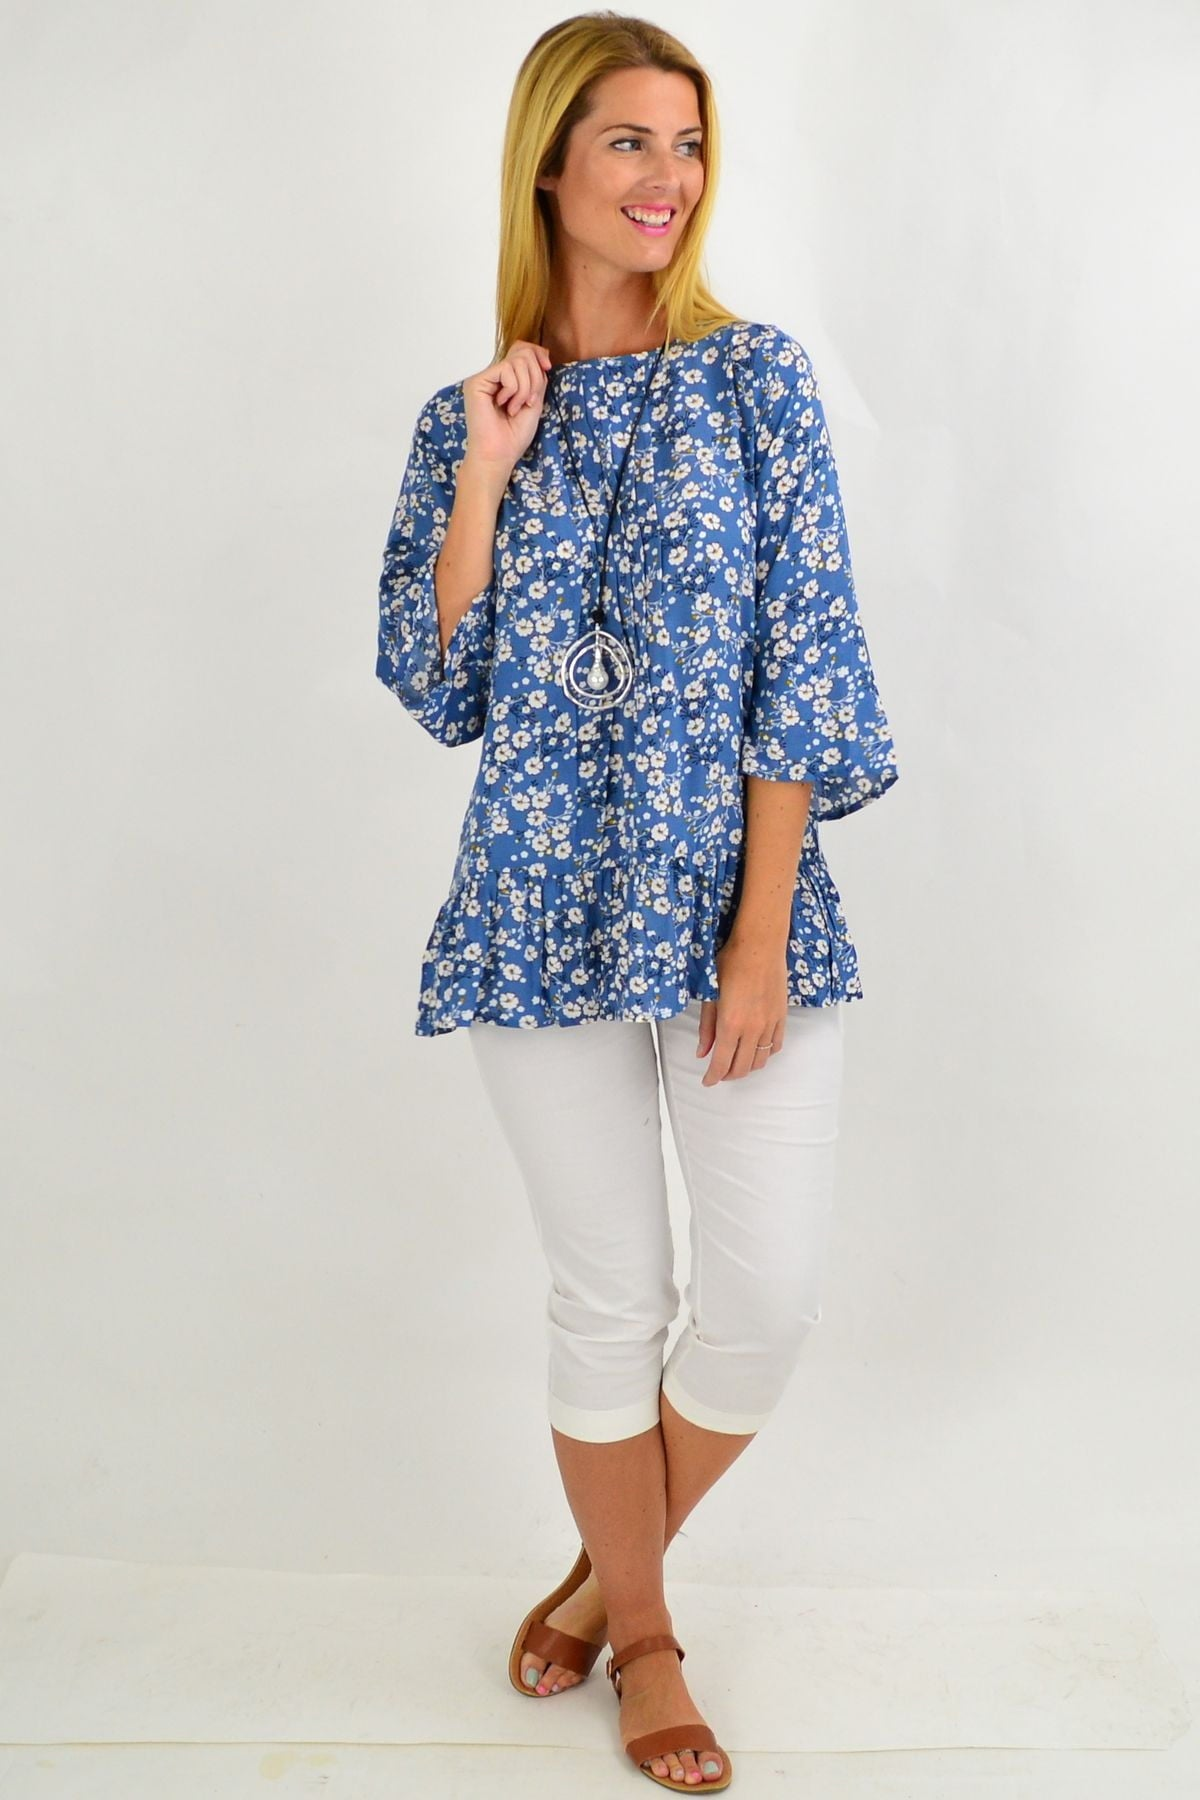 Blue White Floral Tunic Blouse | I Love Tunics | Tunic Tops | Tunic | Tunic Dresses  | womens clothing online